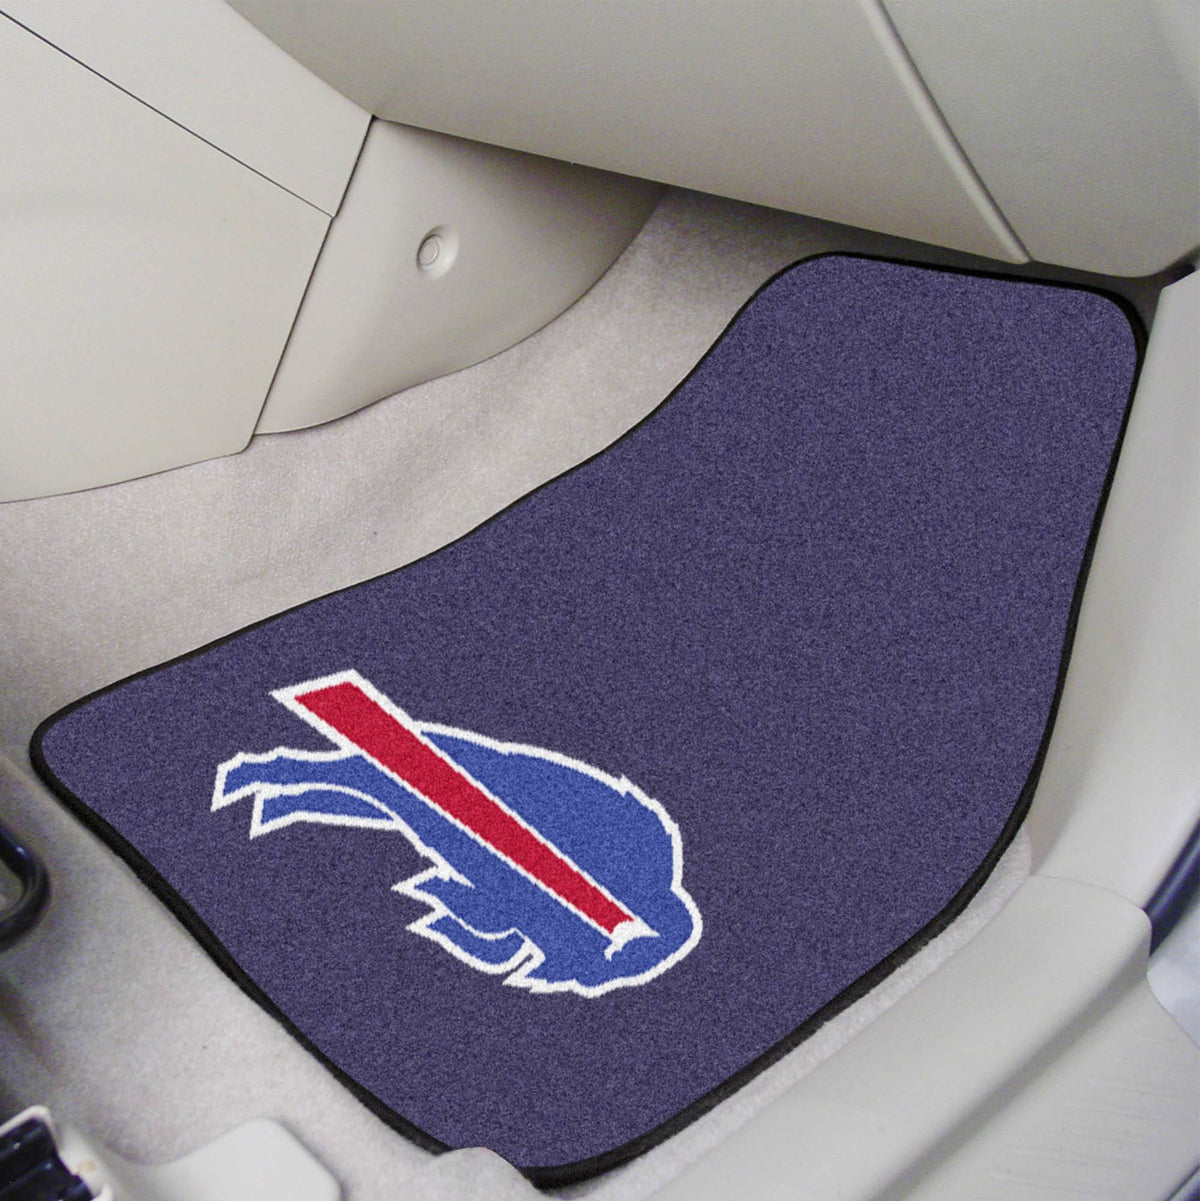 "NFL - 2-pc Carpet Car Mat Set, 17"" x 27"" NFL Mats, Front Car Mats, 2-pc Carpet Car Mat Set, NFL, Auto Fan Mats Buffalo Bills"